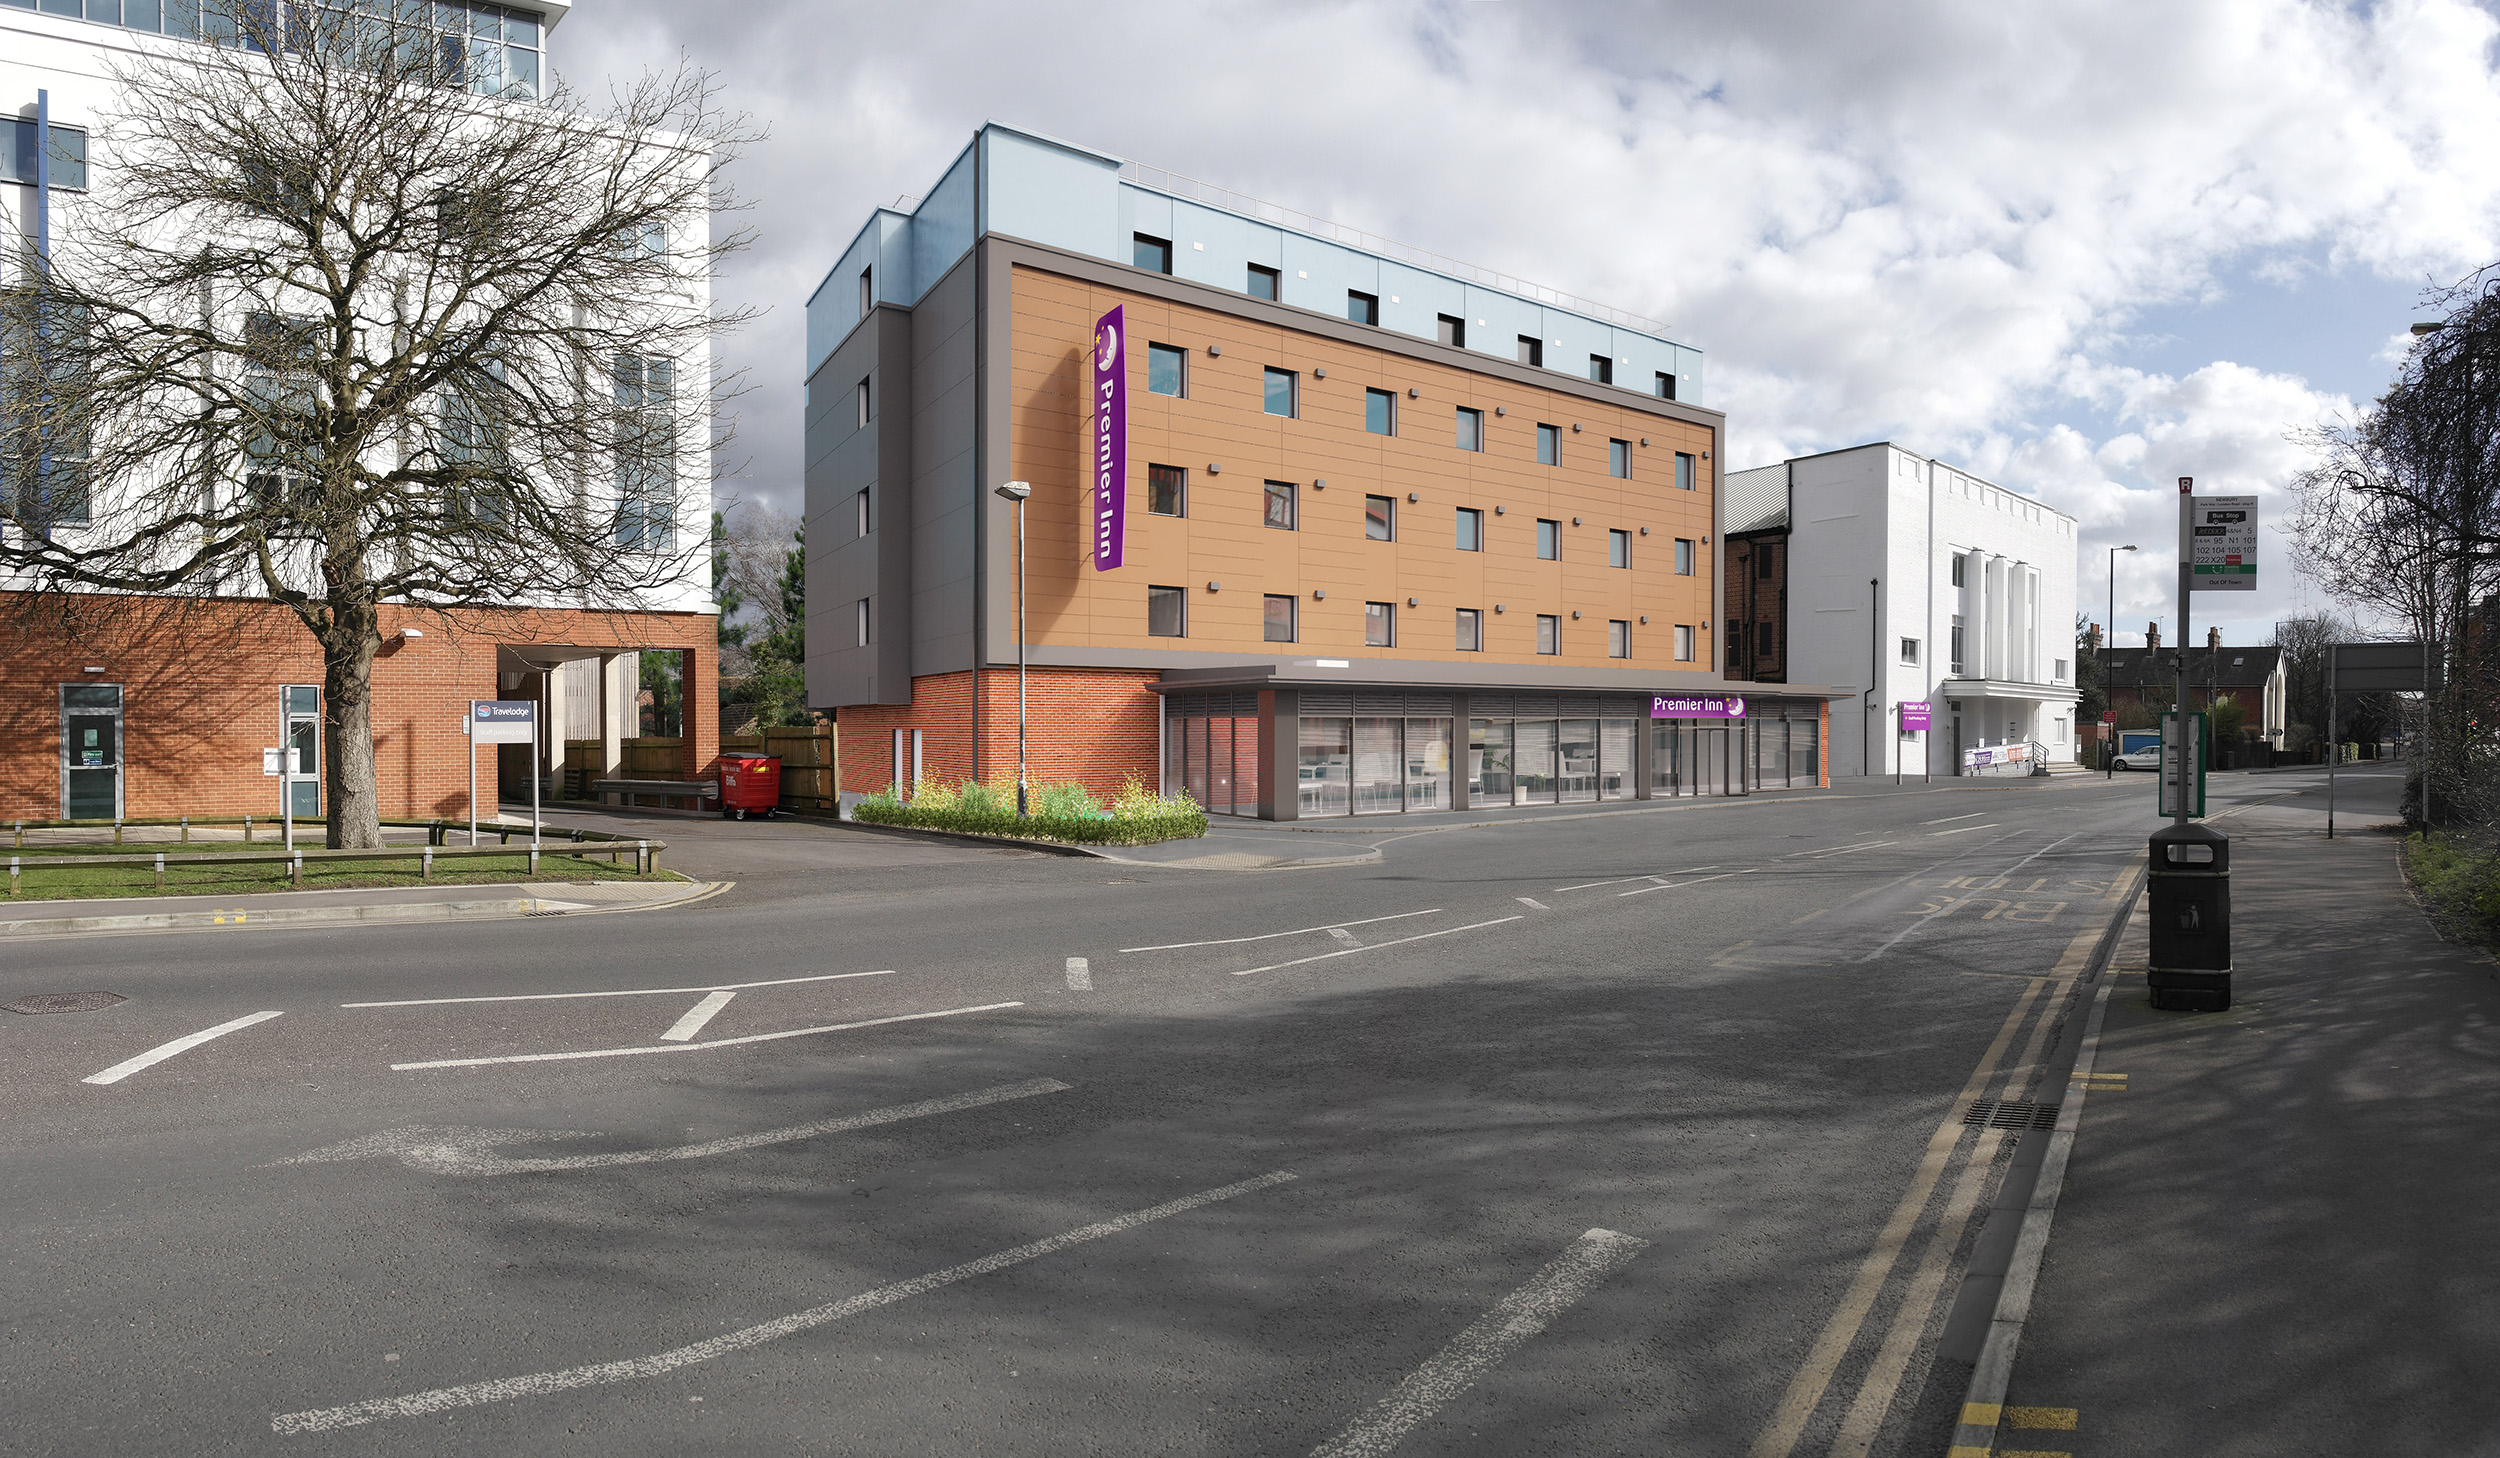 Premier Inn, Salisbury and Newbury